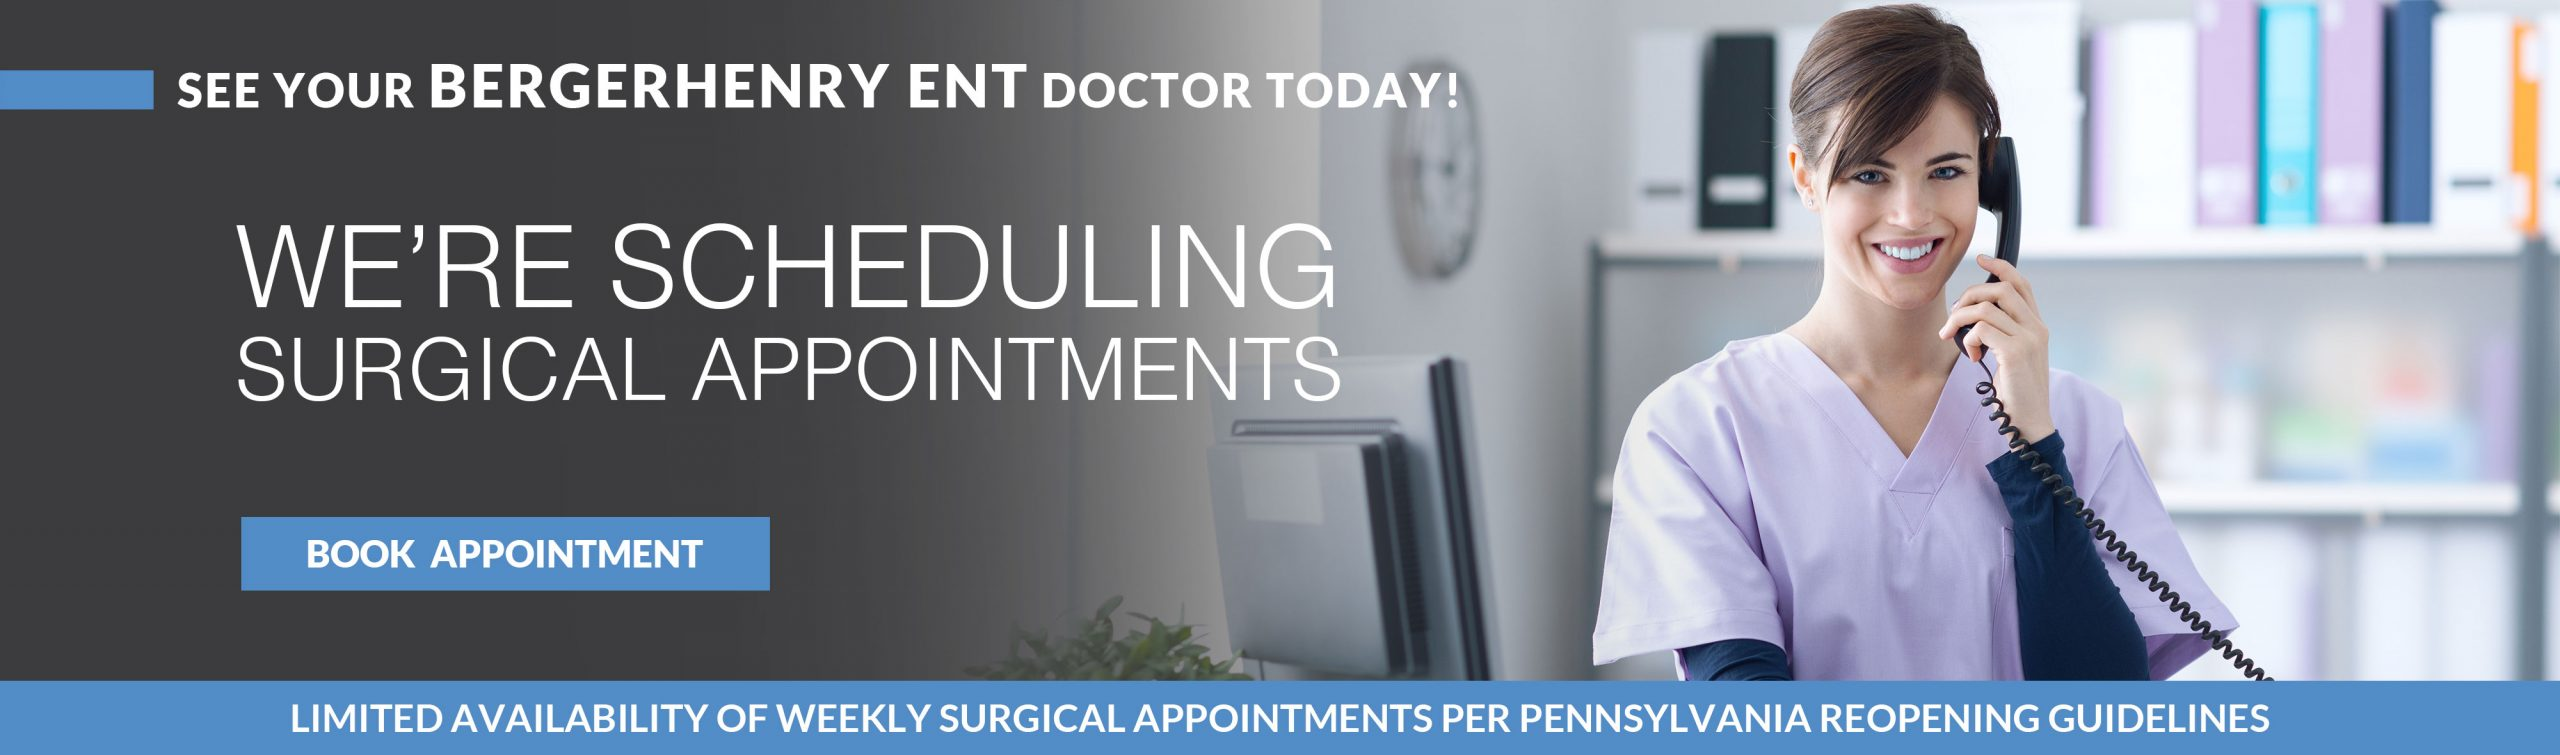 We're Scheduling Surgical Appointments